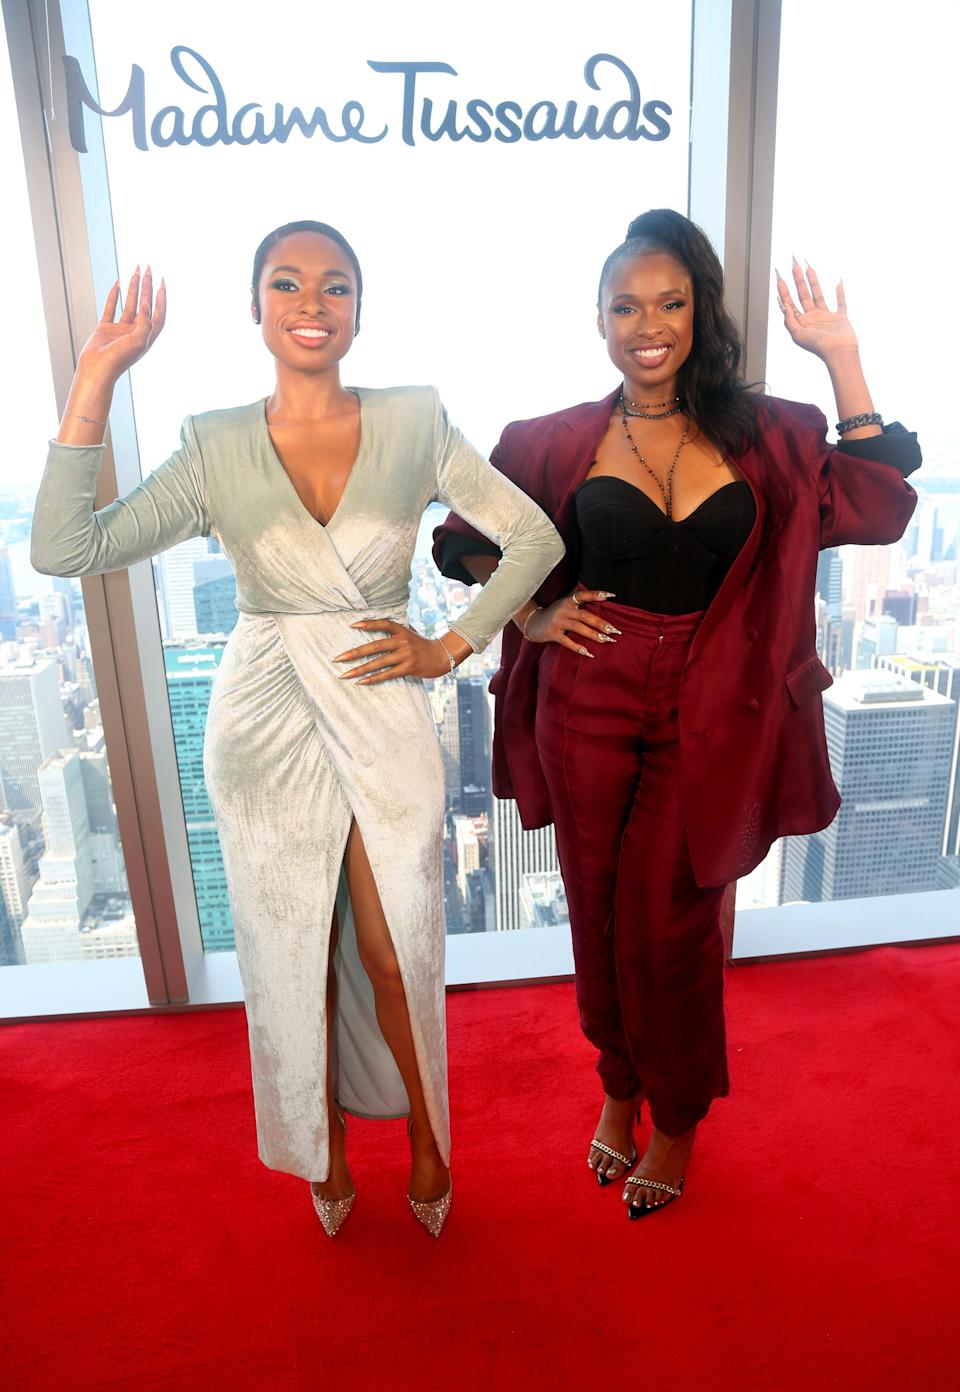 Jennifer Hudson celebrates the reveal of her wax figure, which is now featured at Madame Tussauds New York. - Credit: Madame Tussauds/ MEGA